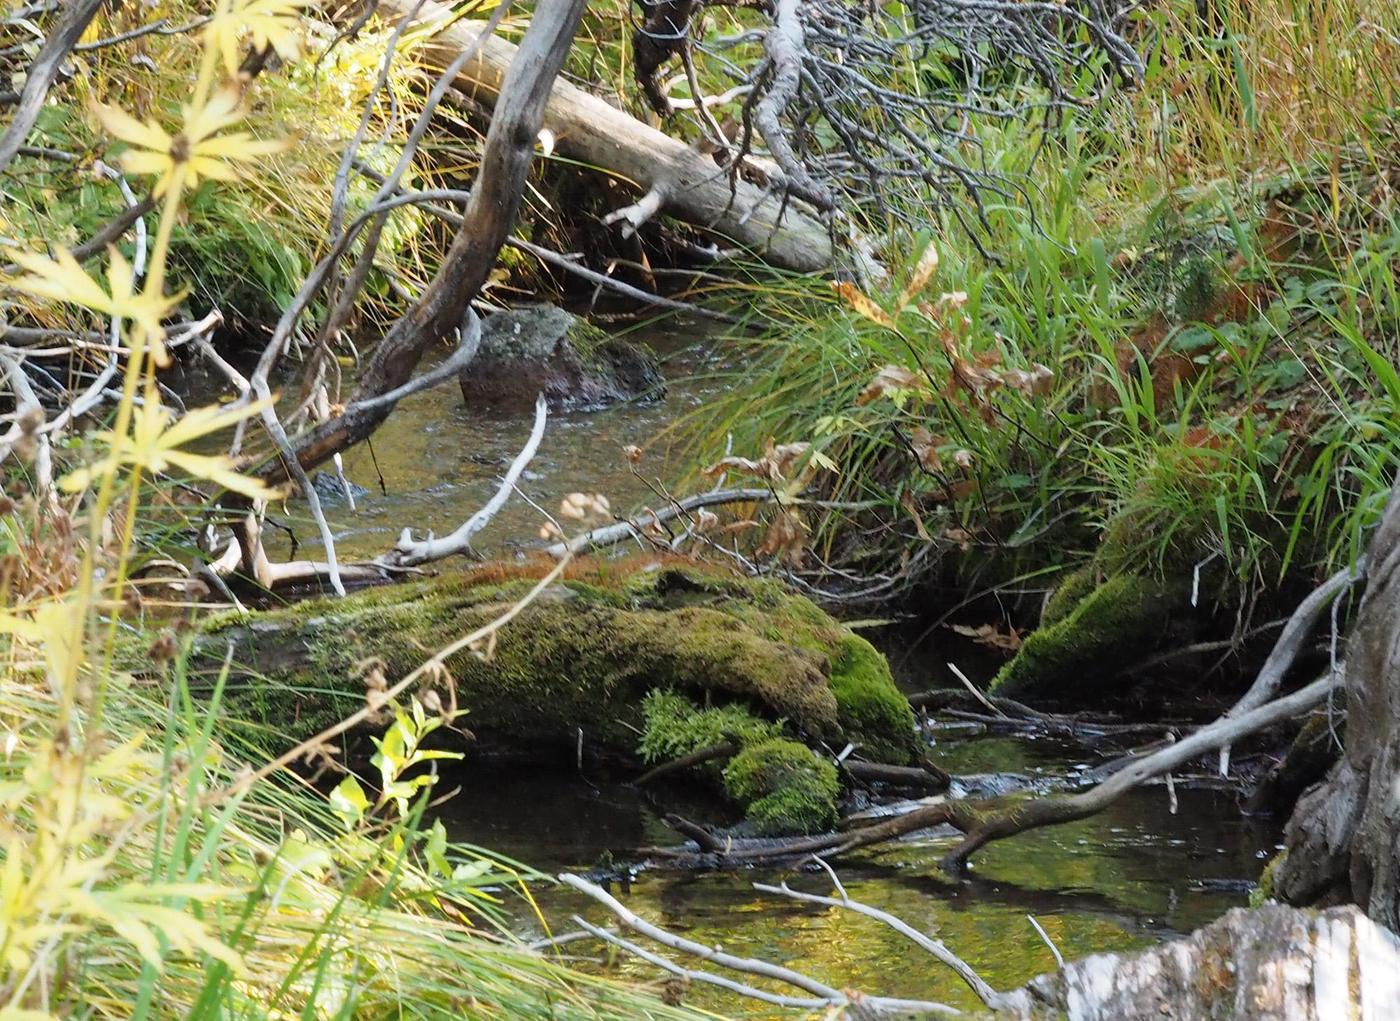 Lost CreekLost Creek runs behind several campsites but is heard at night from most. Once a source of water for the campground but due to downstream tribal rights, NPS may no longer draw from this source.